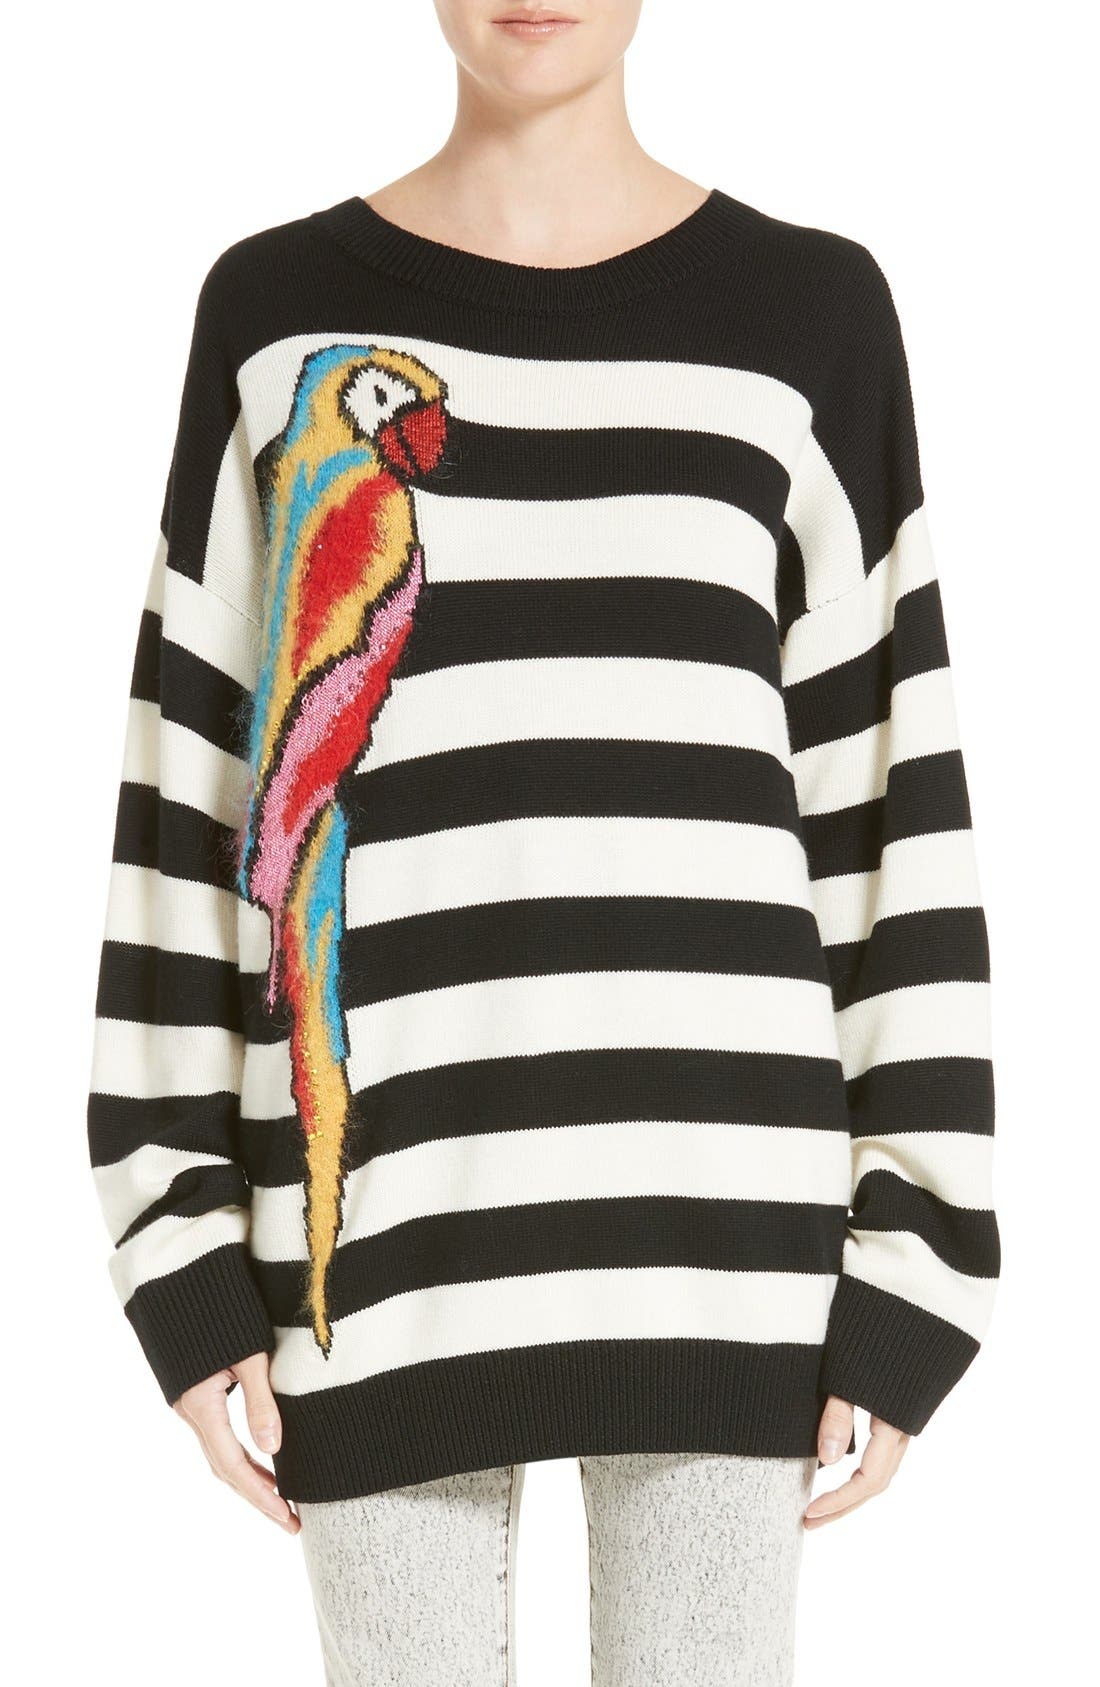 Alternate Image 1 Selected - MARC JACOBS Parrot Jacquard Sweater